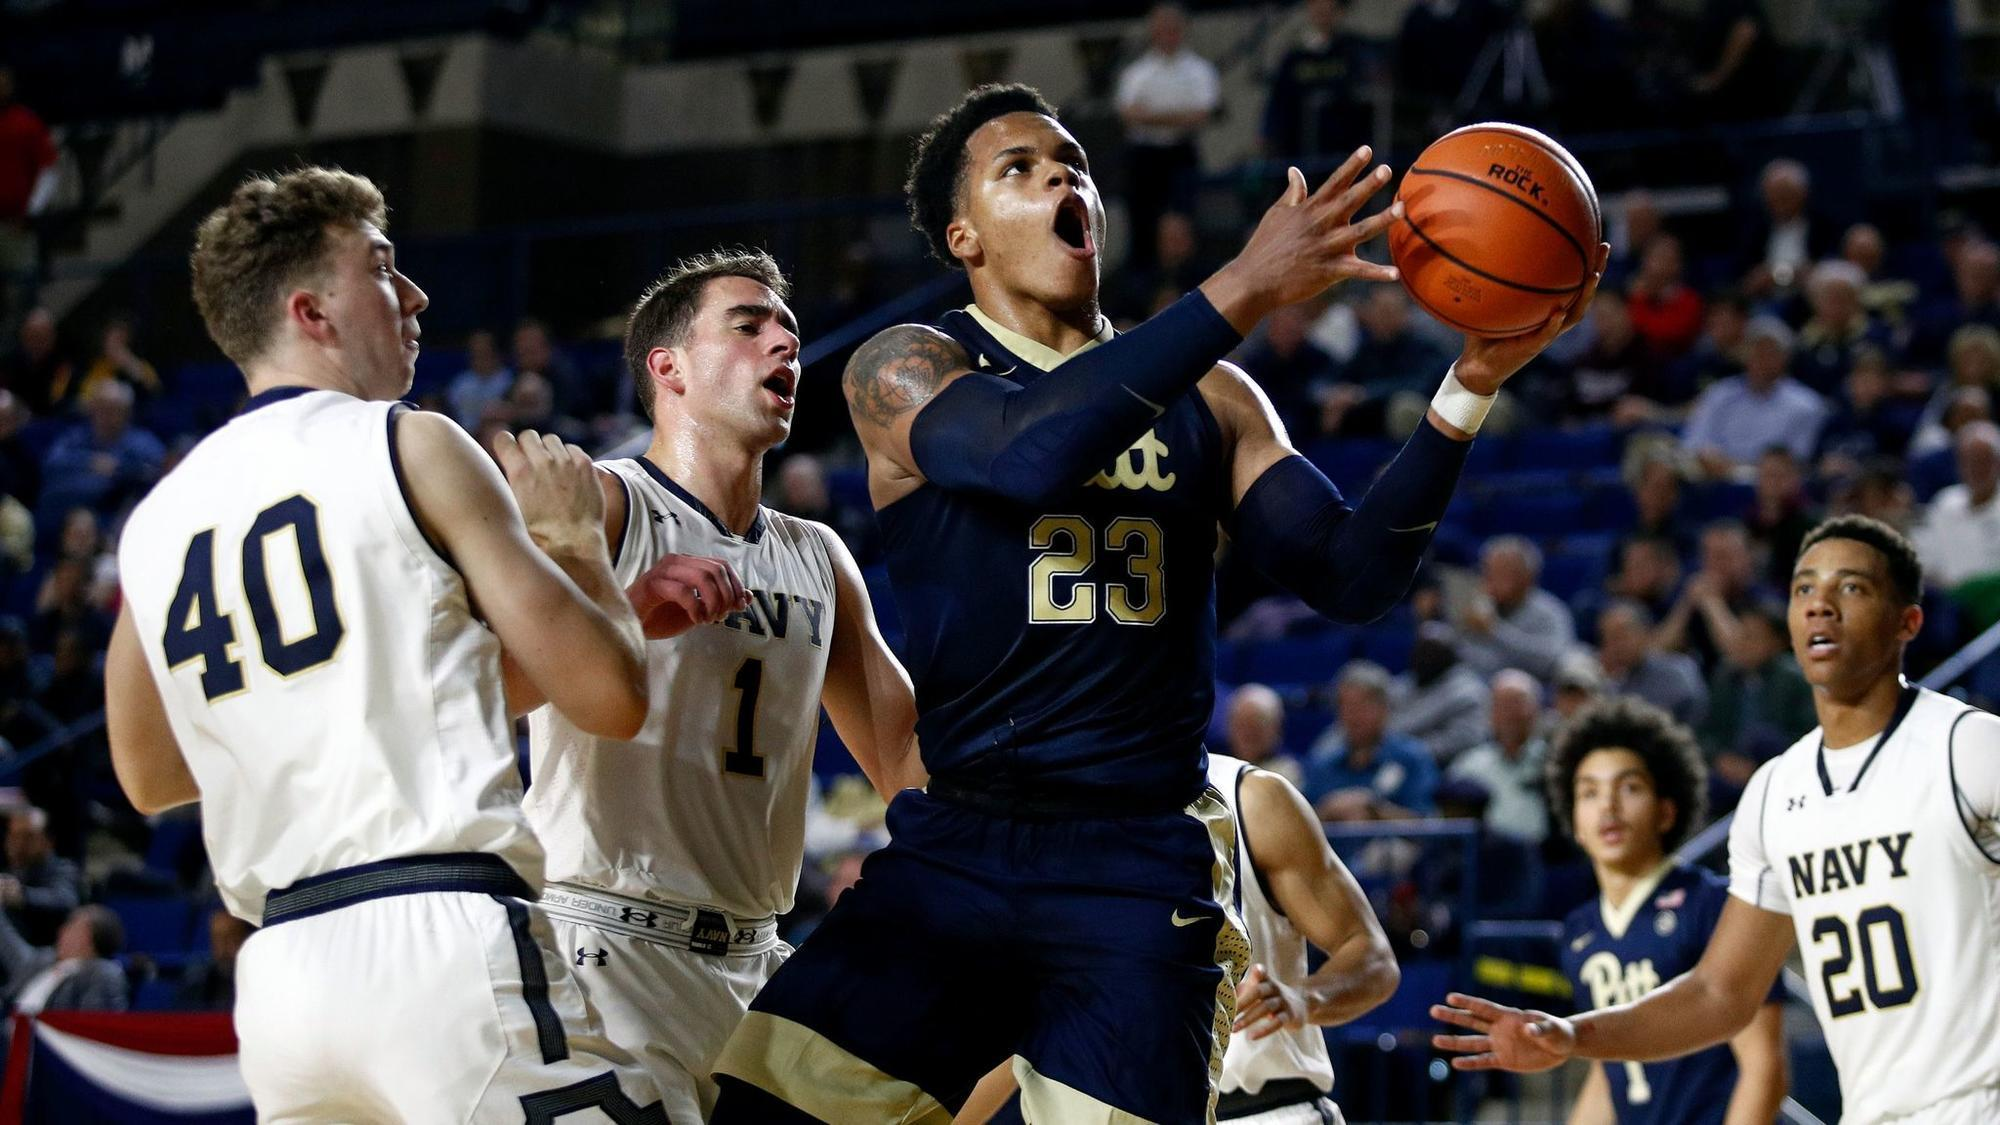 Dulin, Anderson lead way as Navy defeats Pittsburgh, 71-62, in Veterans Classic